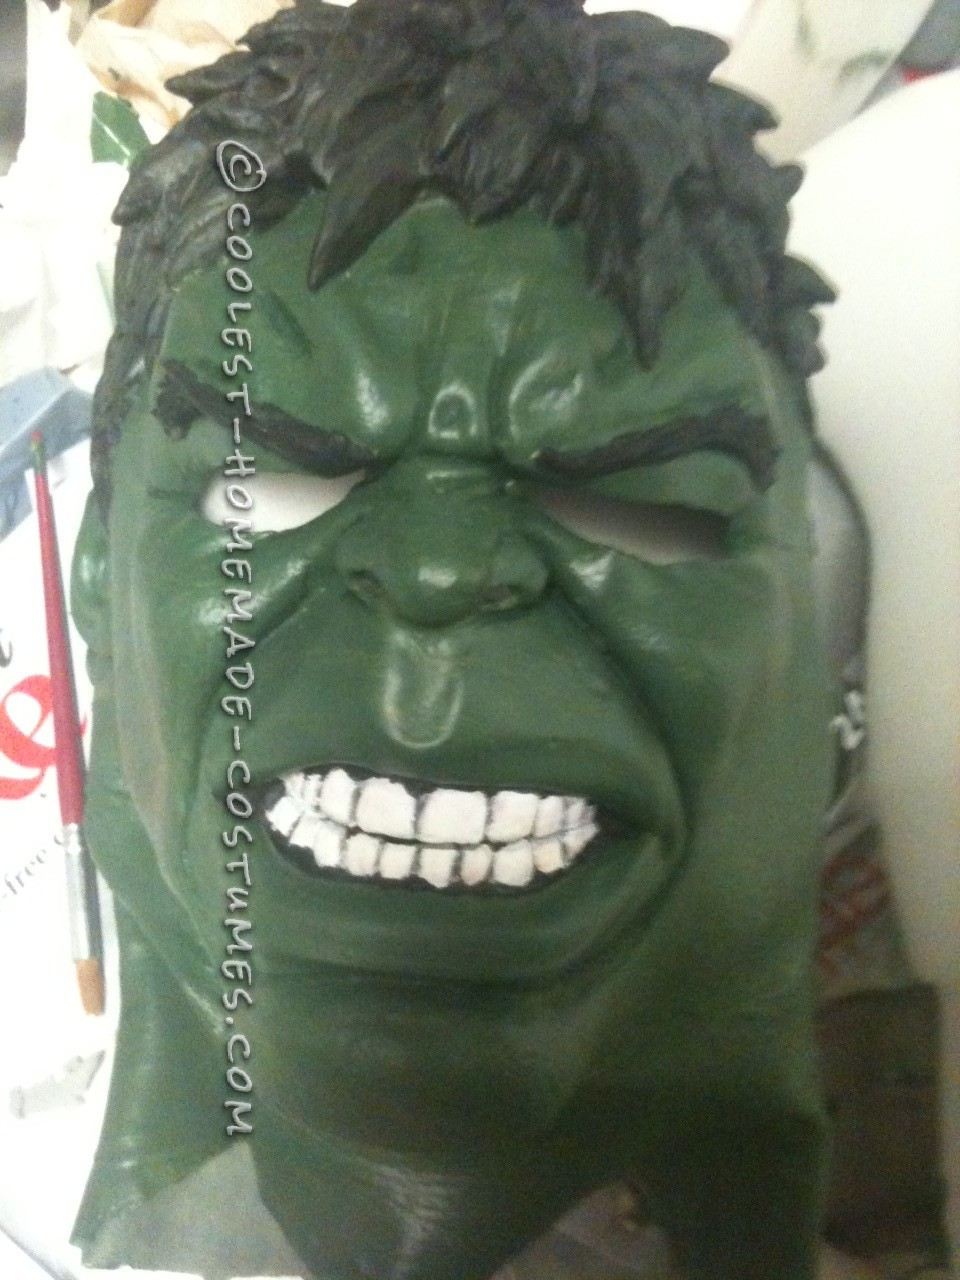 I have always wanted to attempt a large project for Halloween and this year I decided to go for it and create a Hulk costume. I am already a big guy